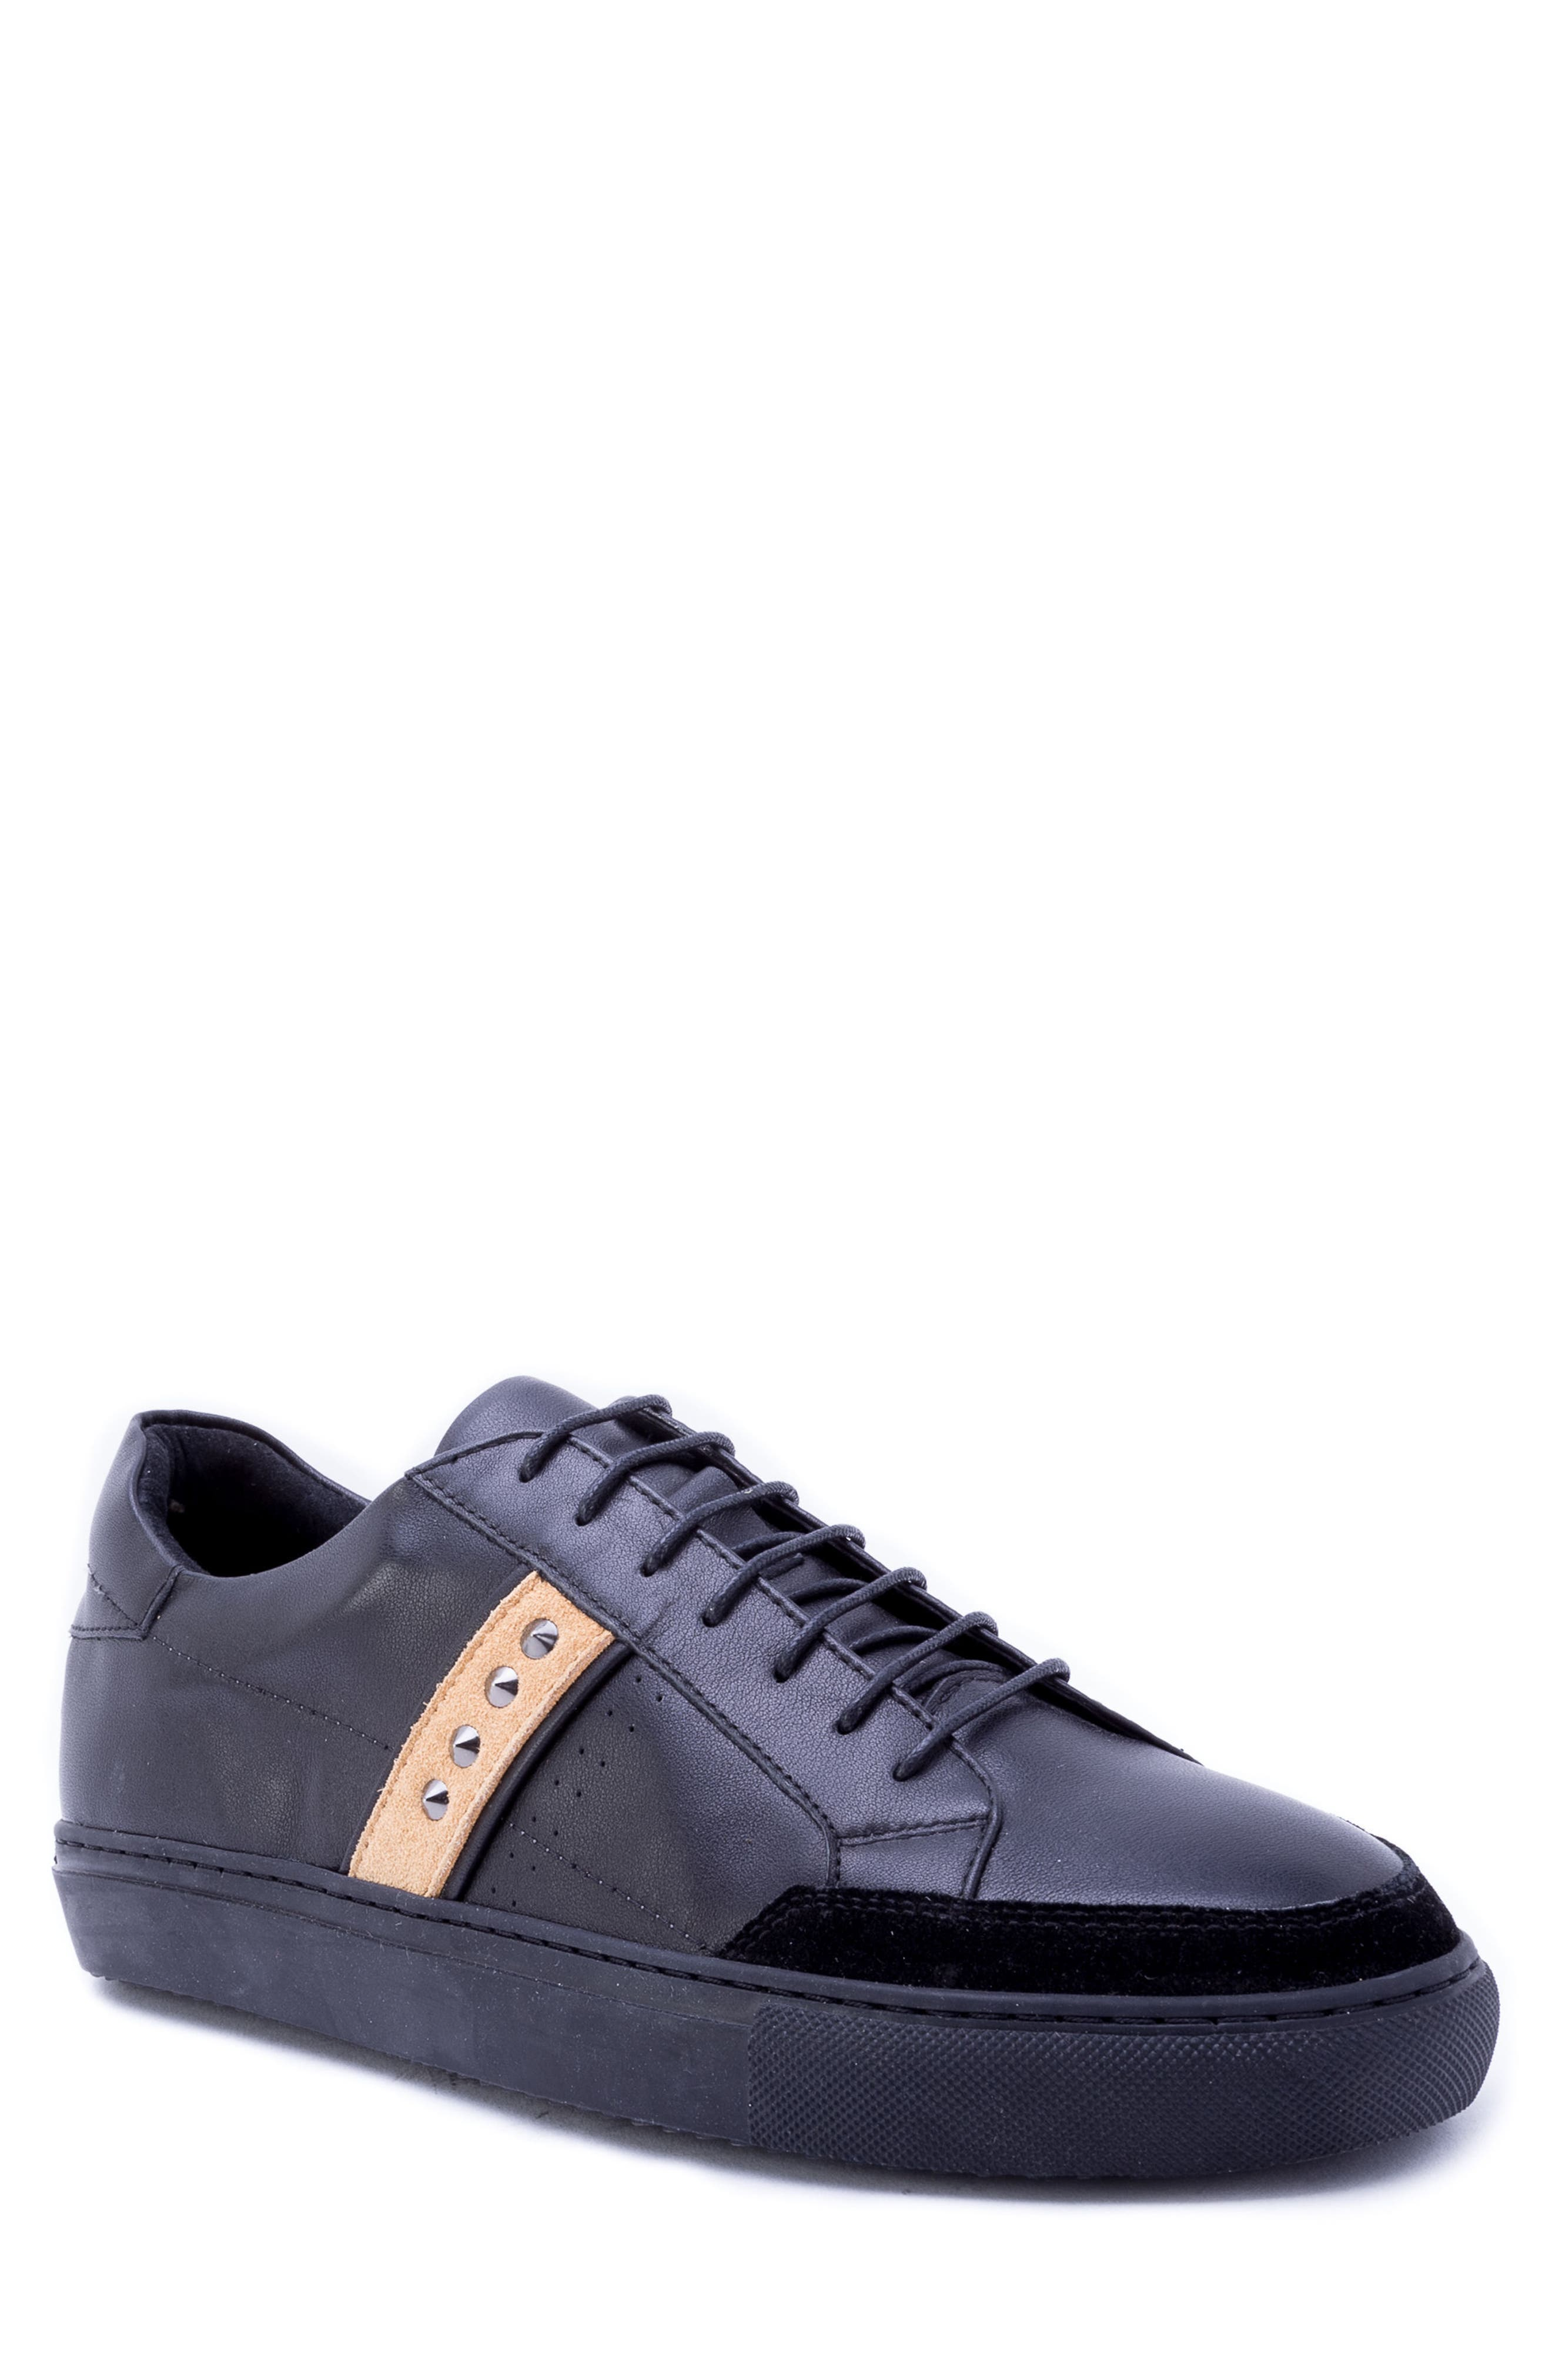 Badgley Mischka Connery Sneaker,                             Main thumbnail 1, color,                             BLACK LEATHER